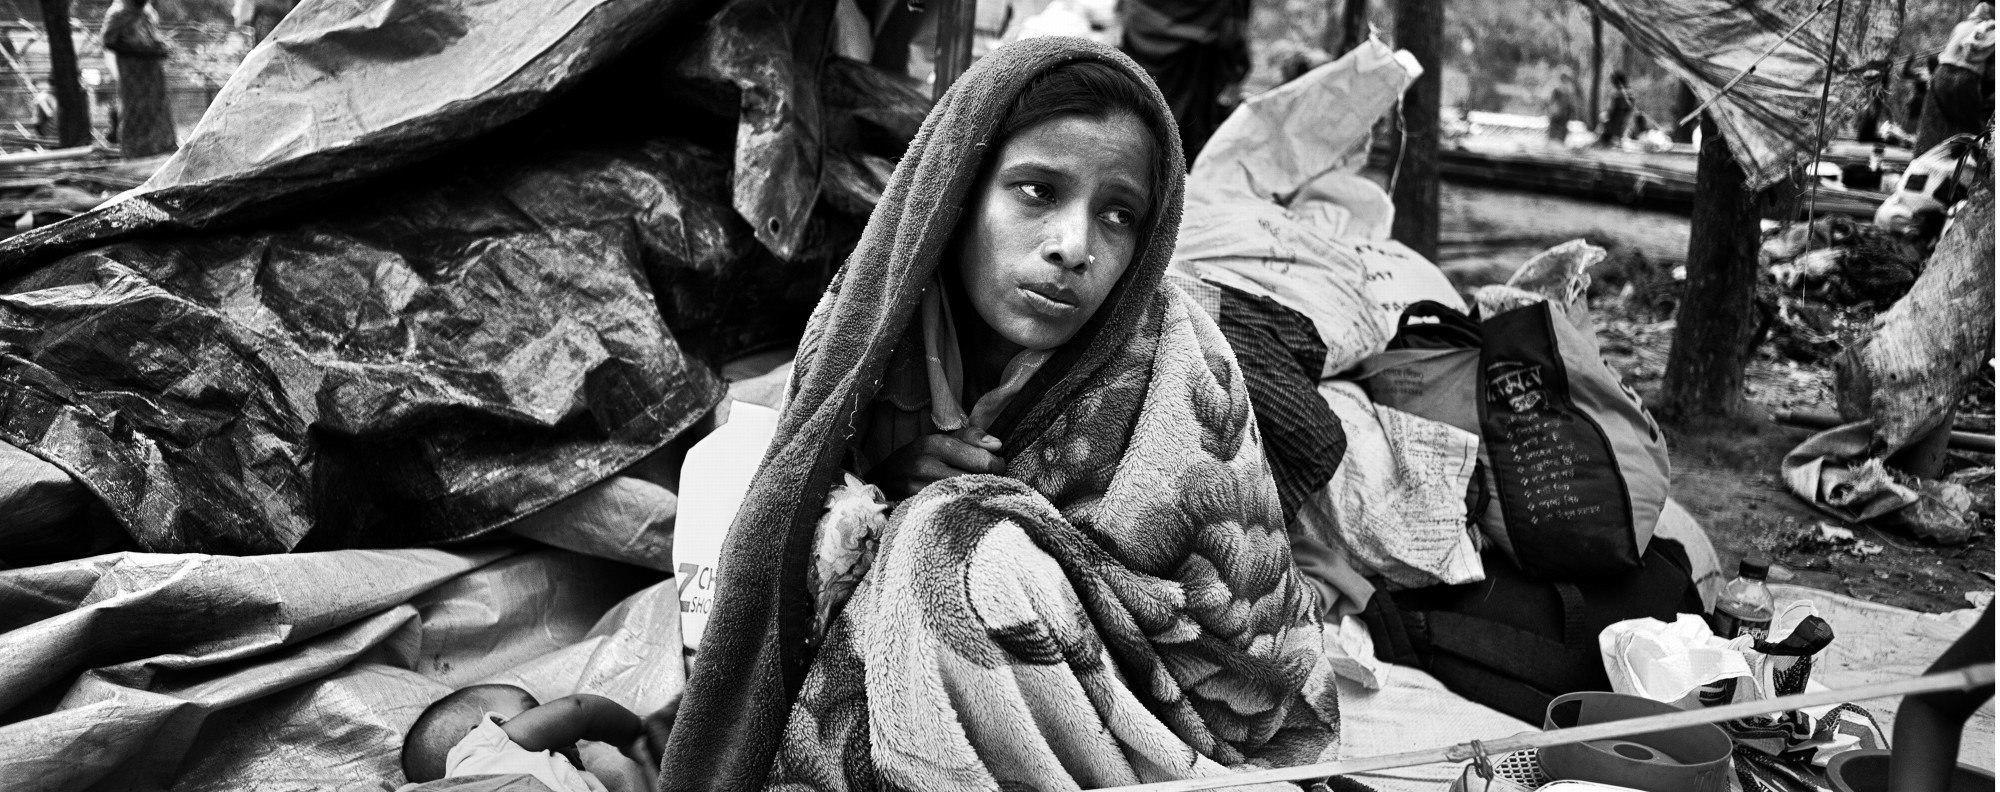 A Rohingya woman in a refugee camp, in Bangladesh. Picture: Greg Constantine